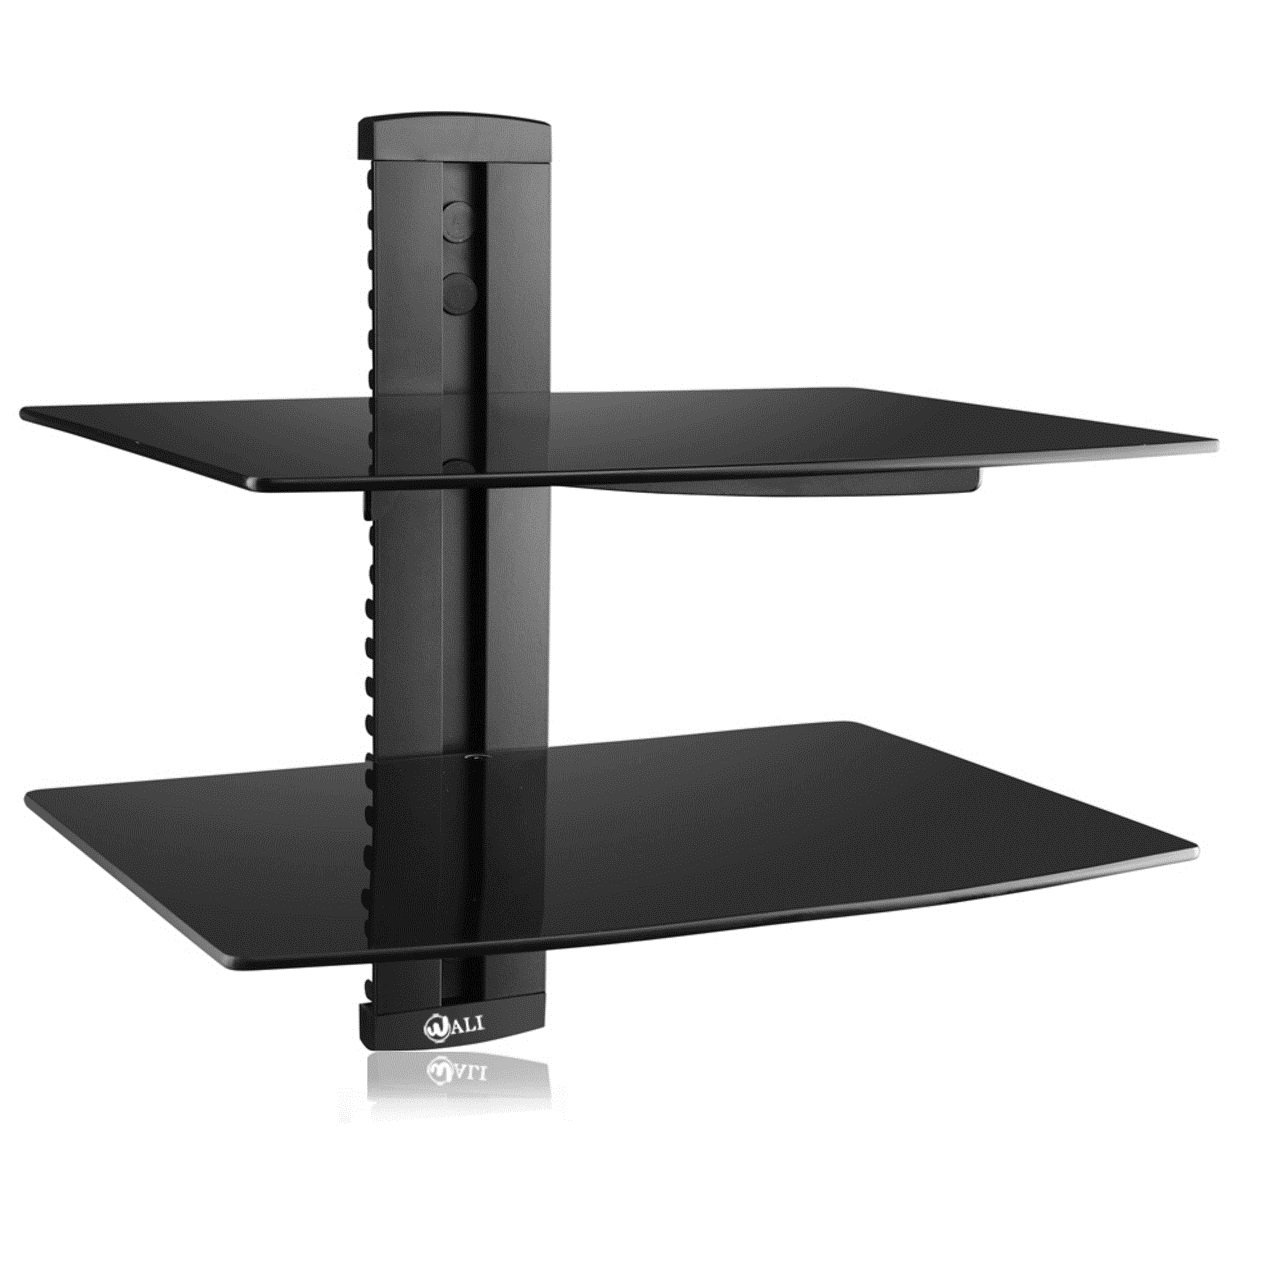 WALI Floating Shelf with Strengthened Tempered Glass for DVD Players/Cable Boxes/Games Consoles/TV Accessories (CS202), 2 Shelf, Black